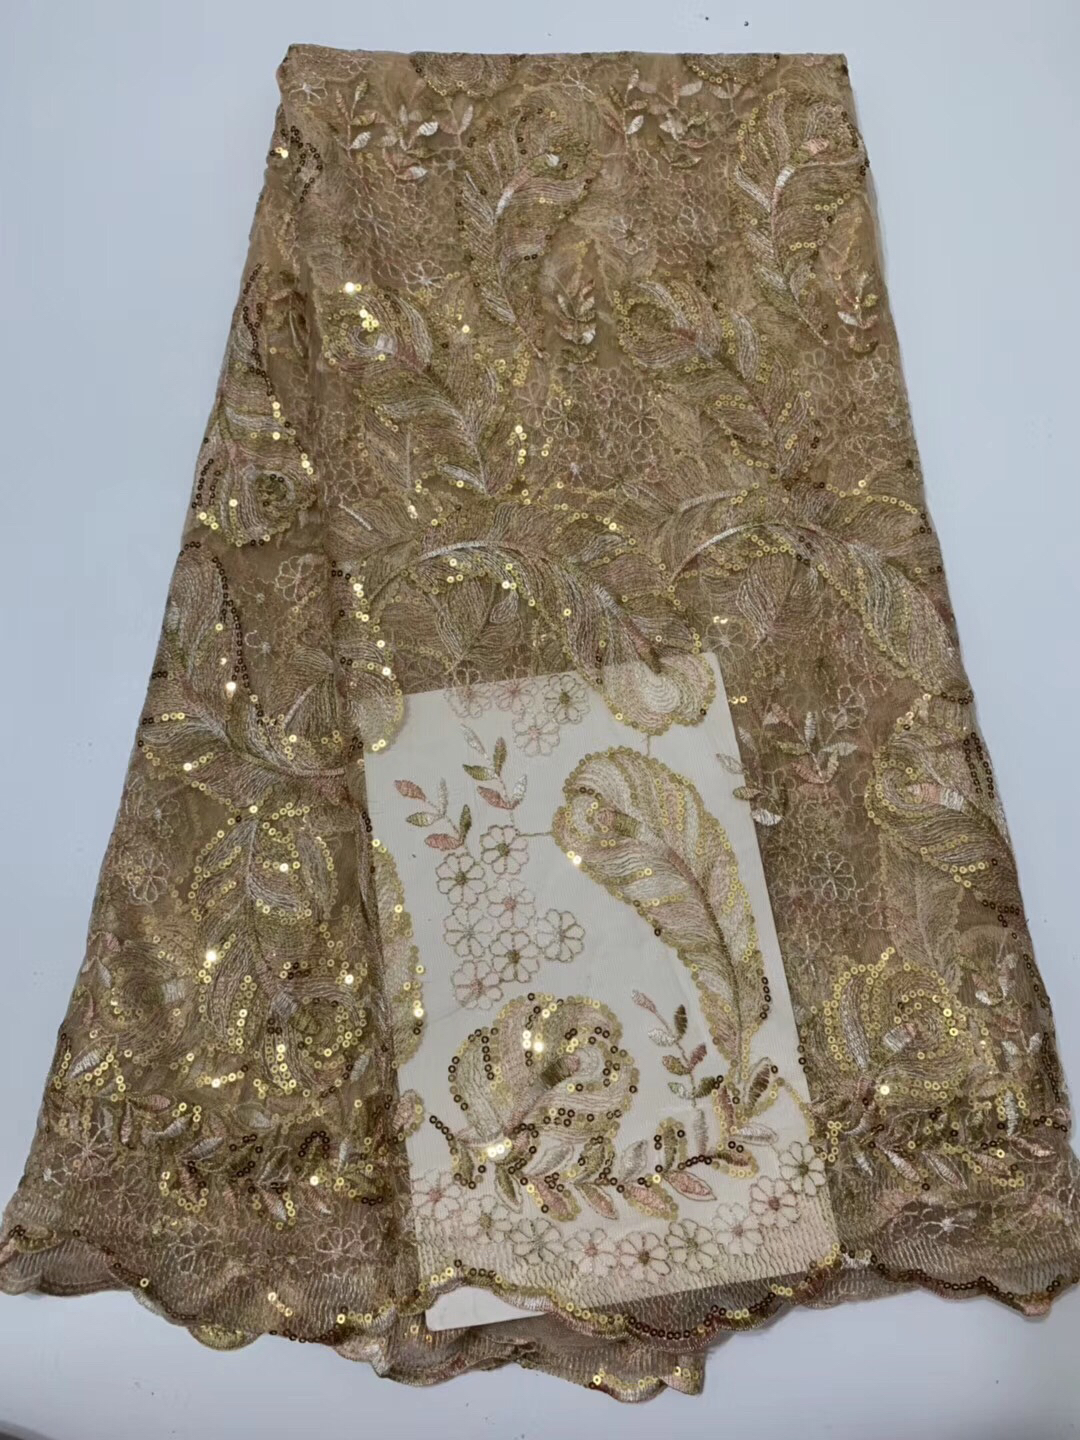 GOLD DESIGNER MOTIF SEQUIN BEADED APPLIQUE 2520-N